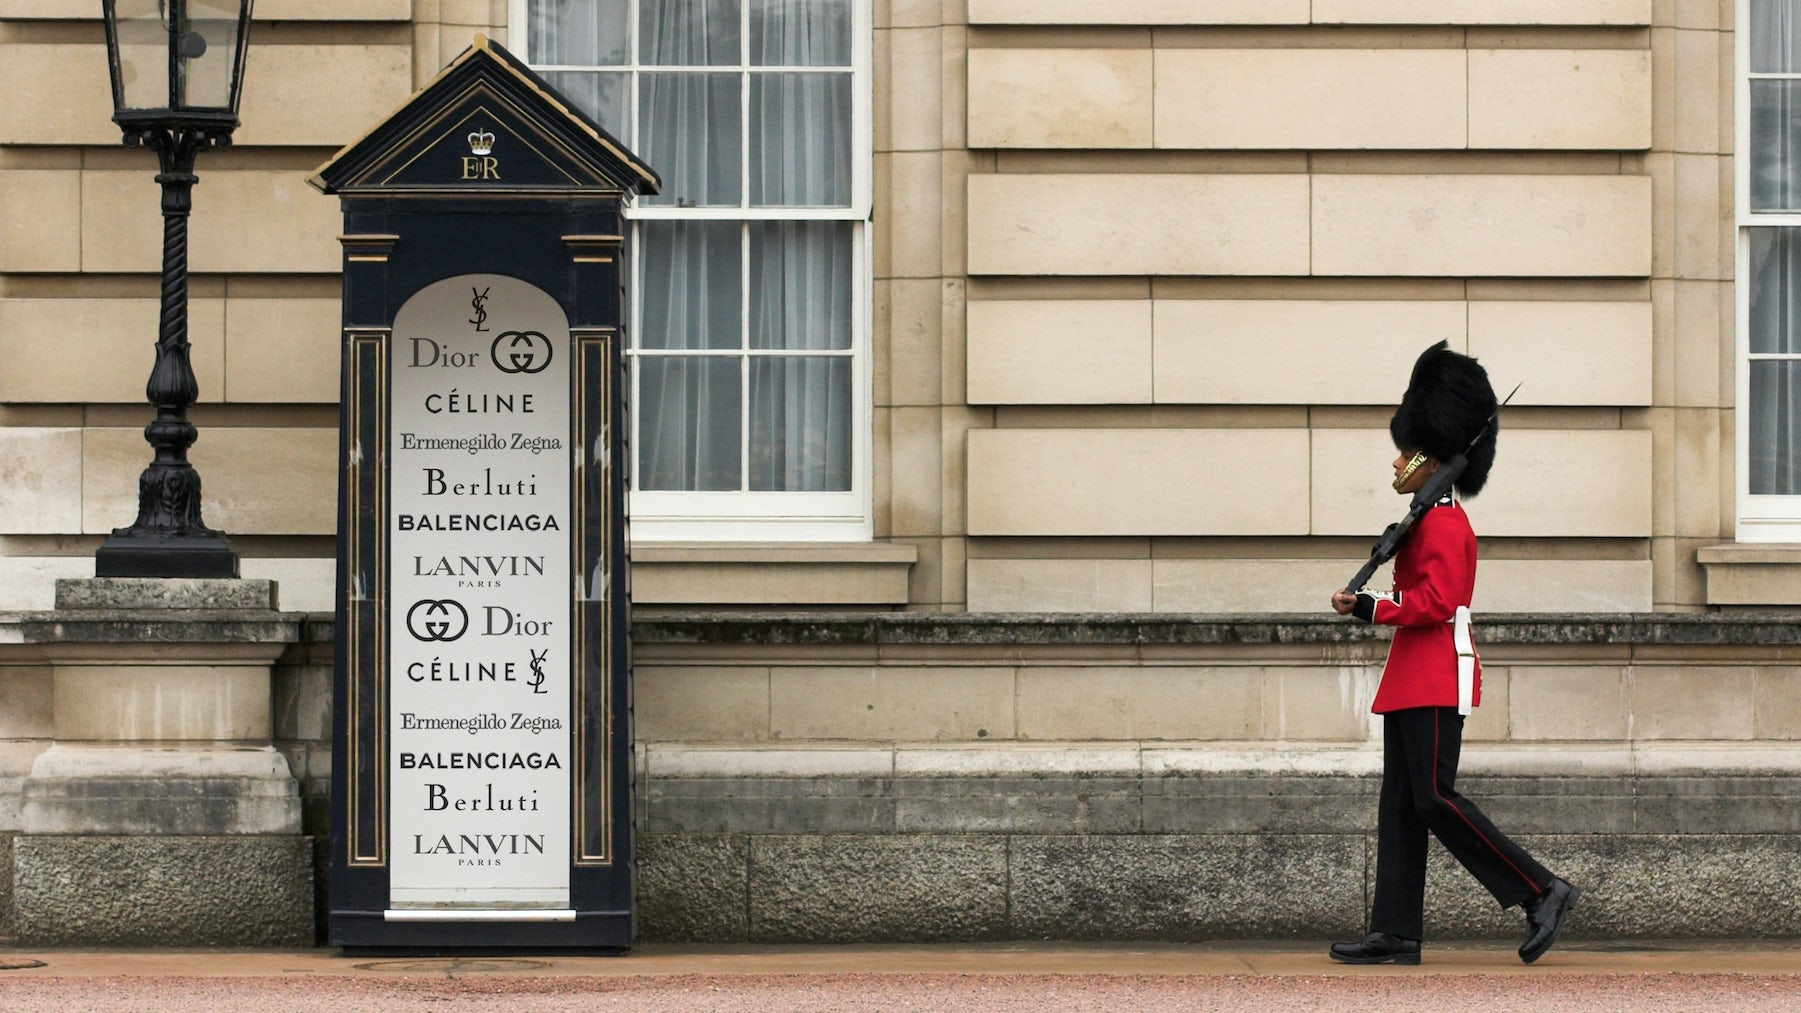 The changing of the guard | Image: BoF/Shutterstock